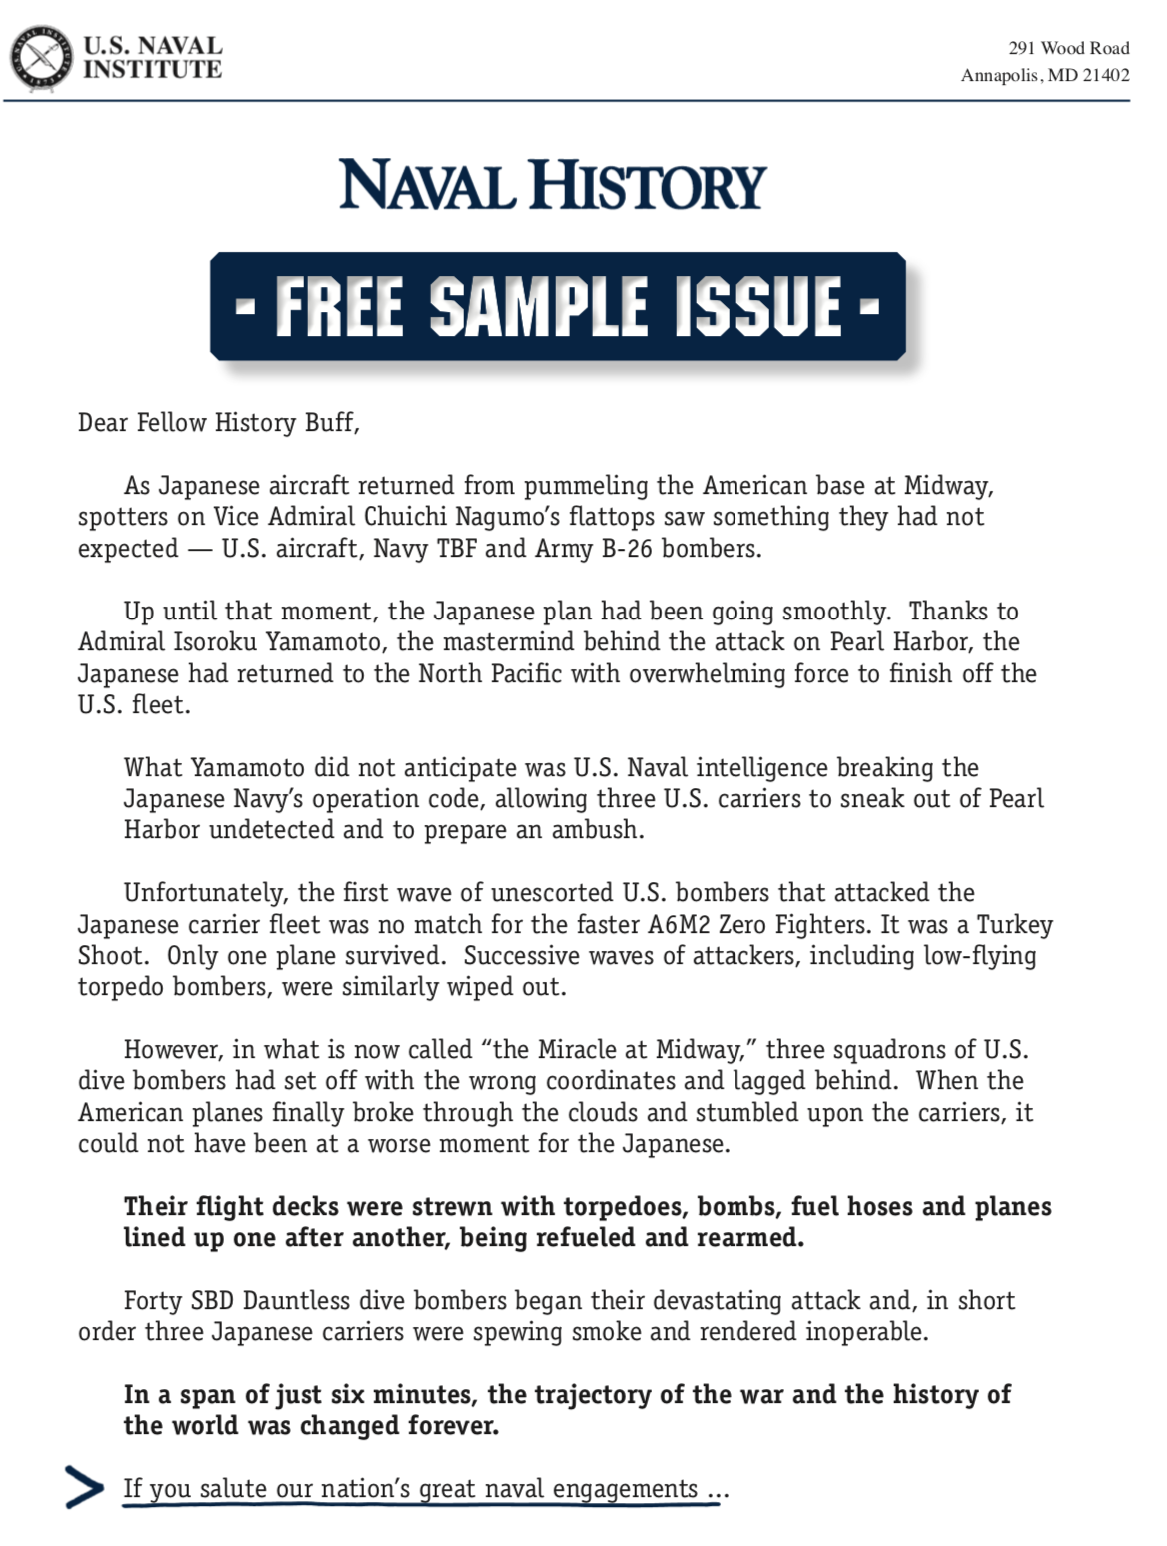 image of Naval History direct mail sales letter